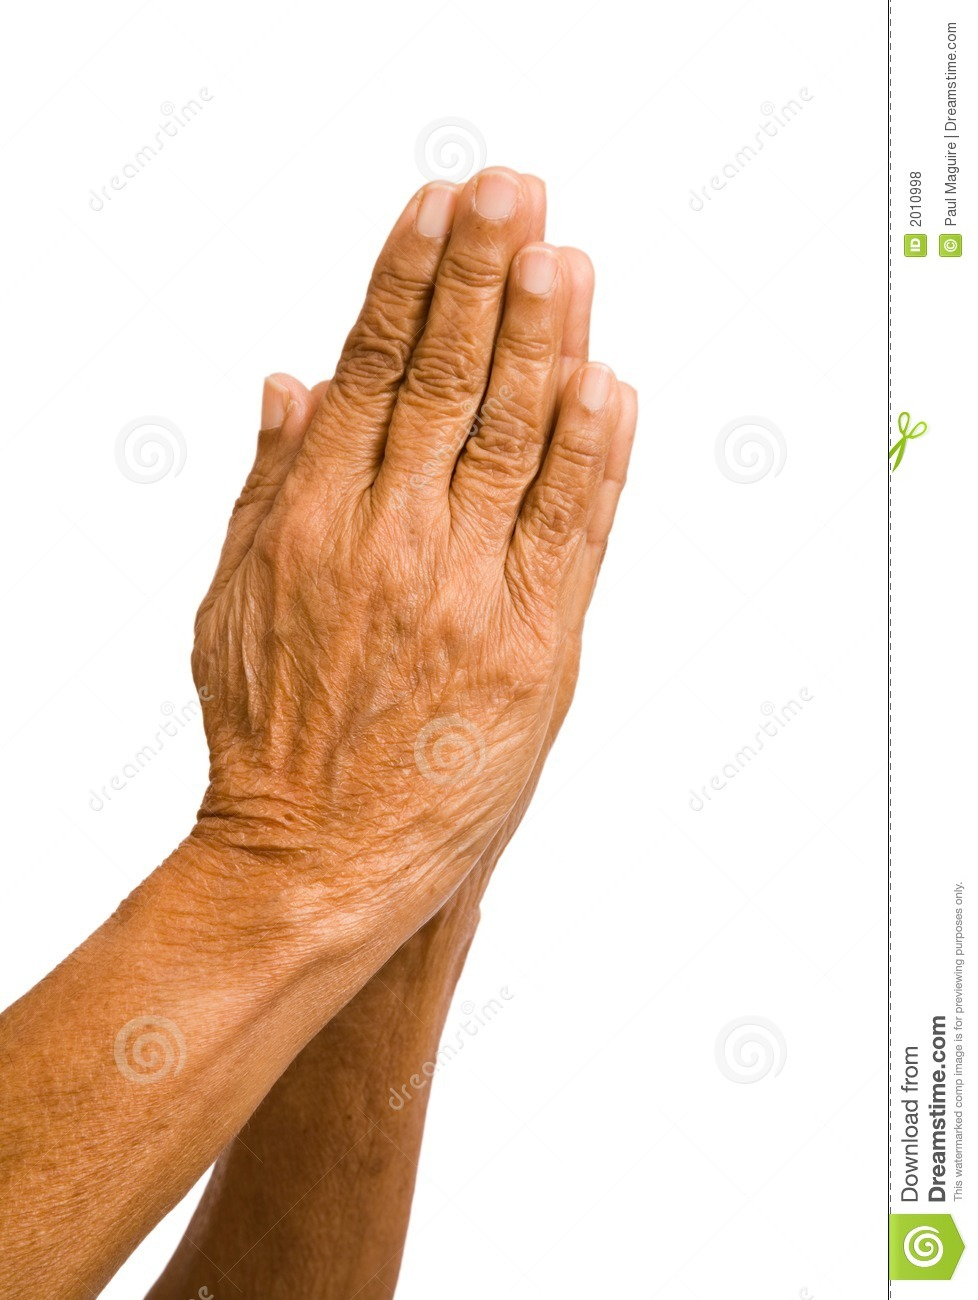 Old Hands Praying Royalty Free Stock Photos - Image: 2010998